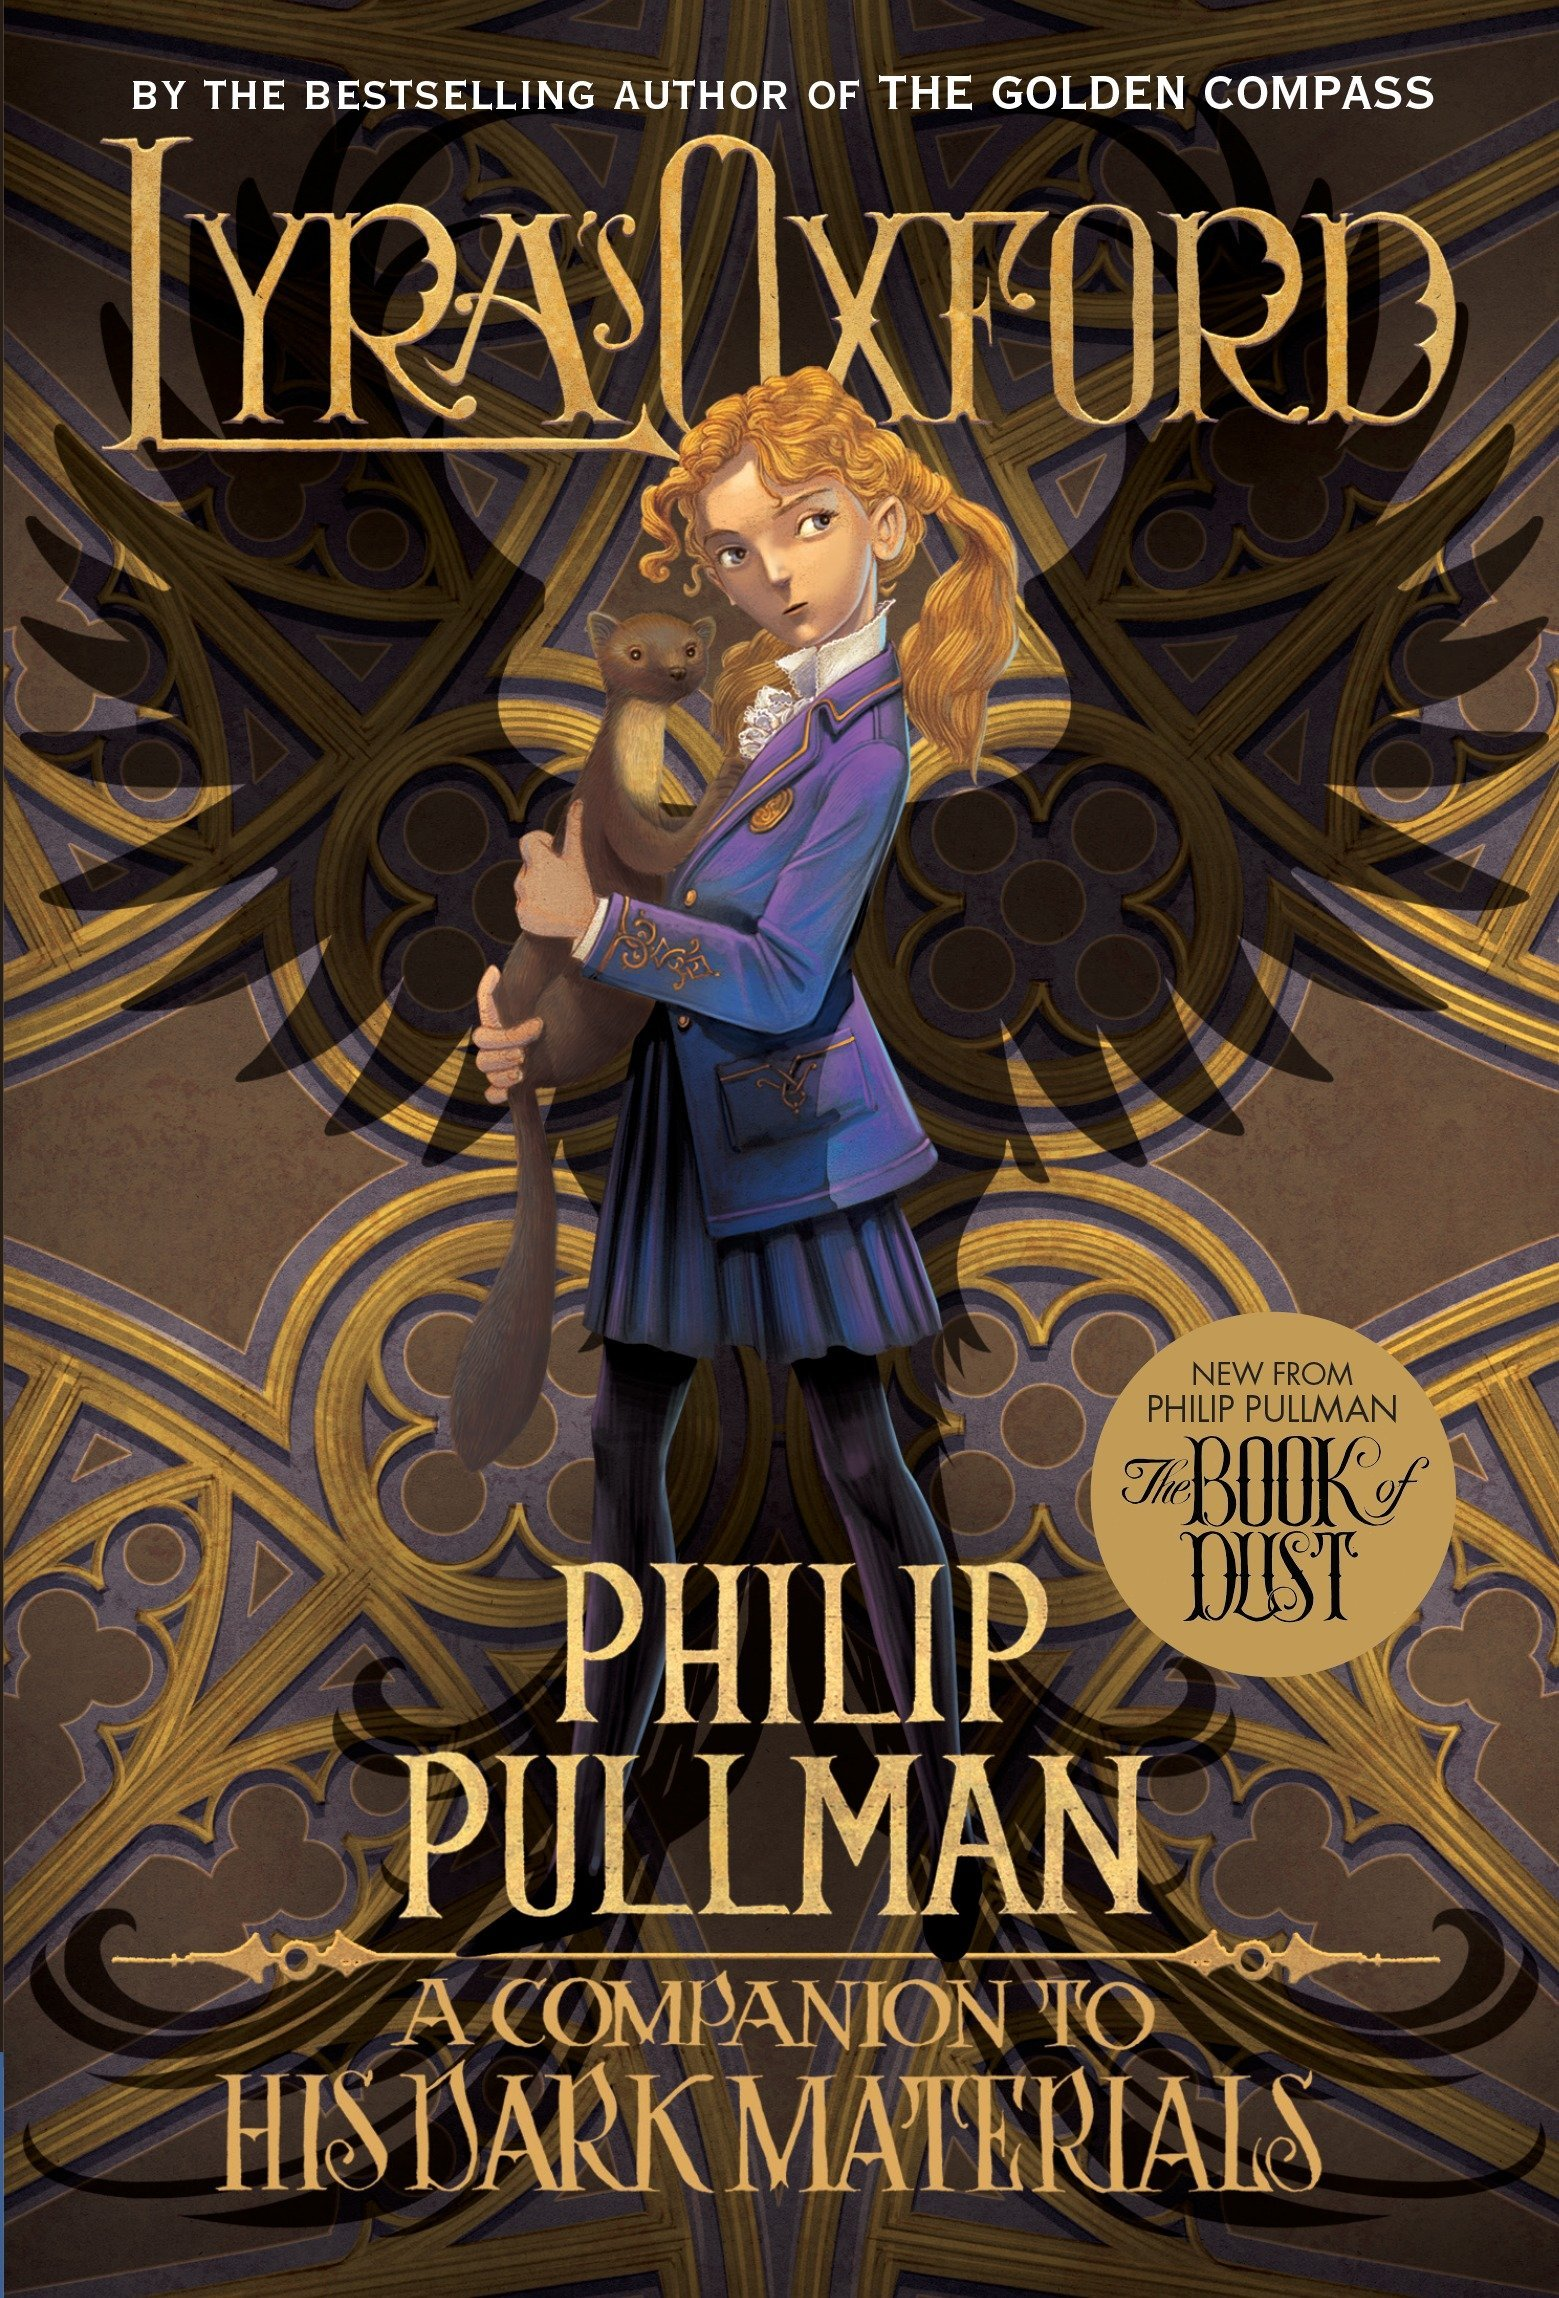 Lyra's Oxford-A Companion To His Dark Materials new cover.jpg